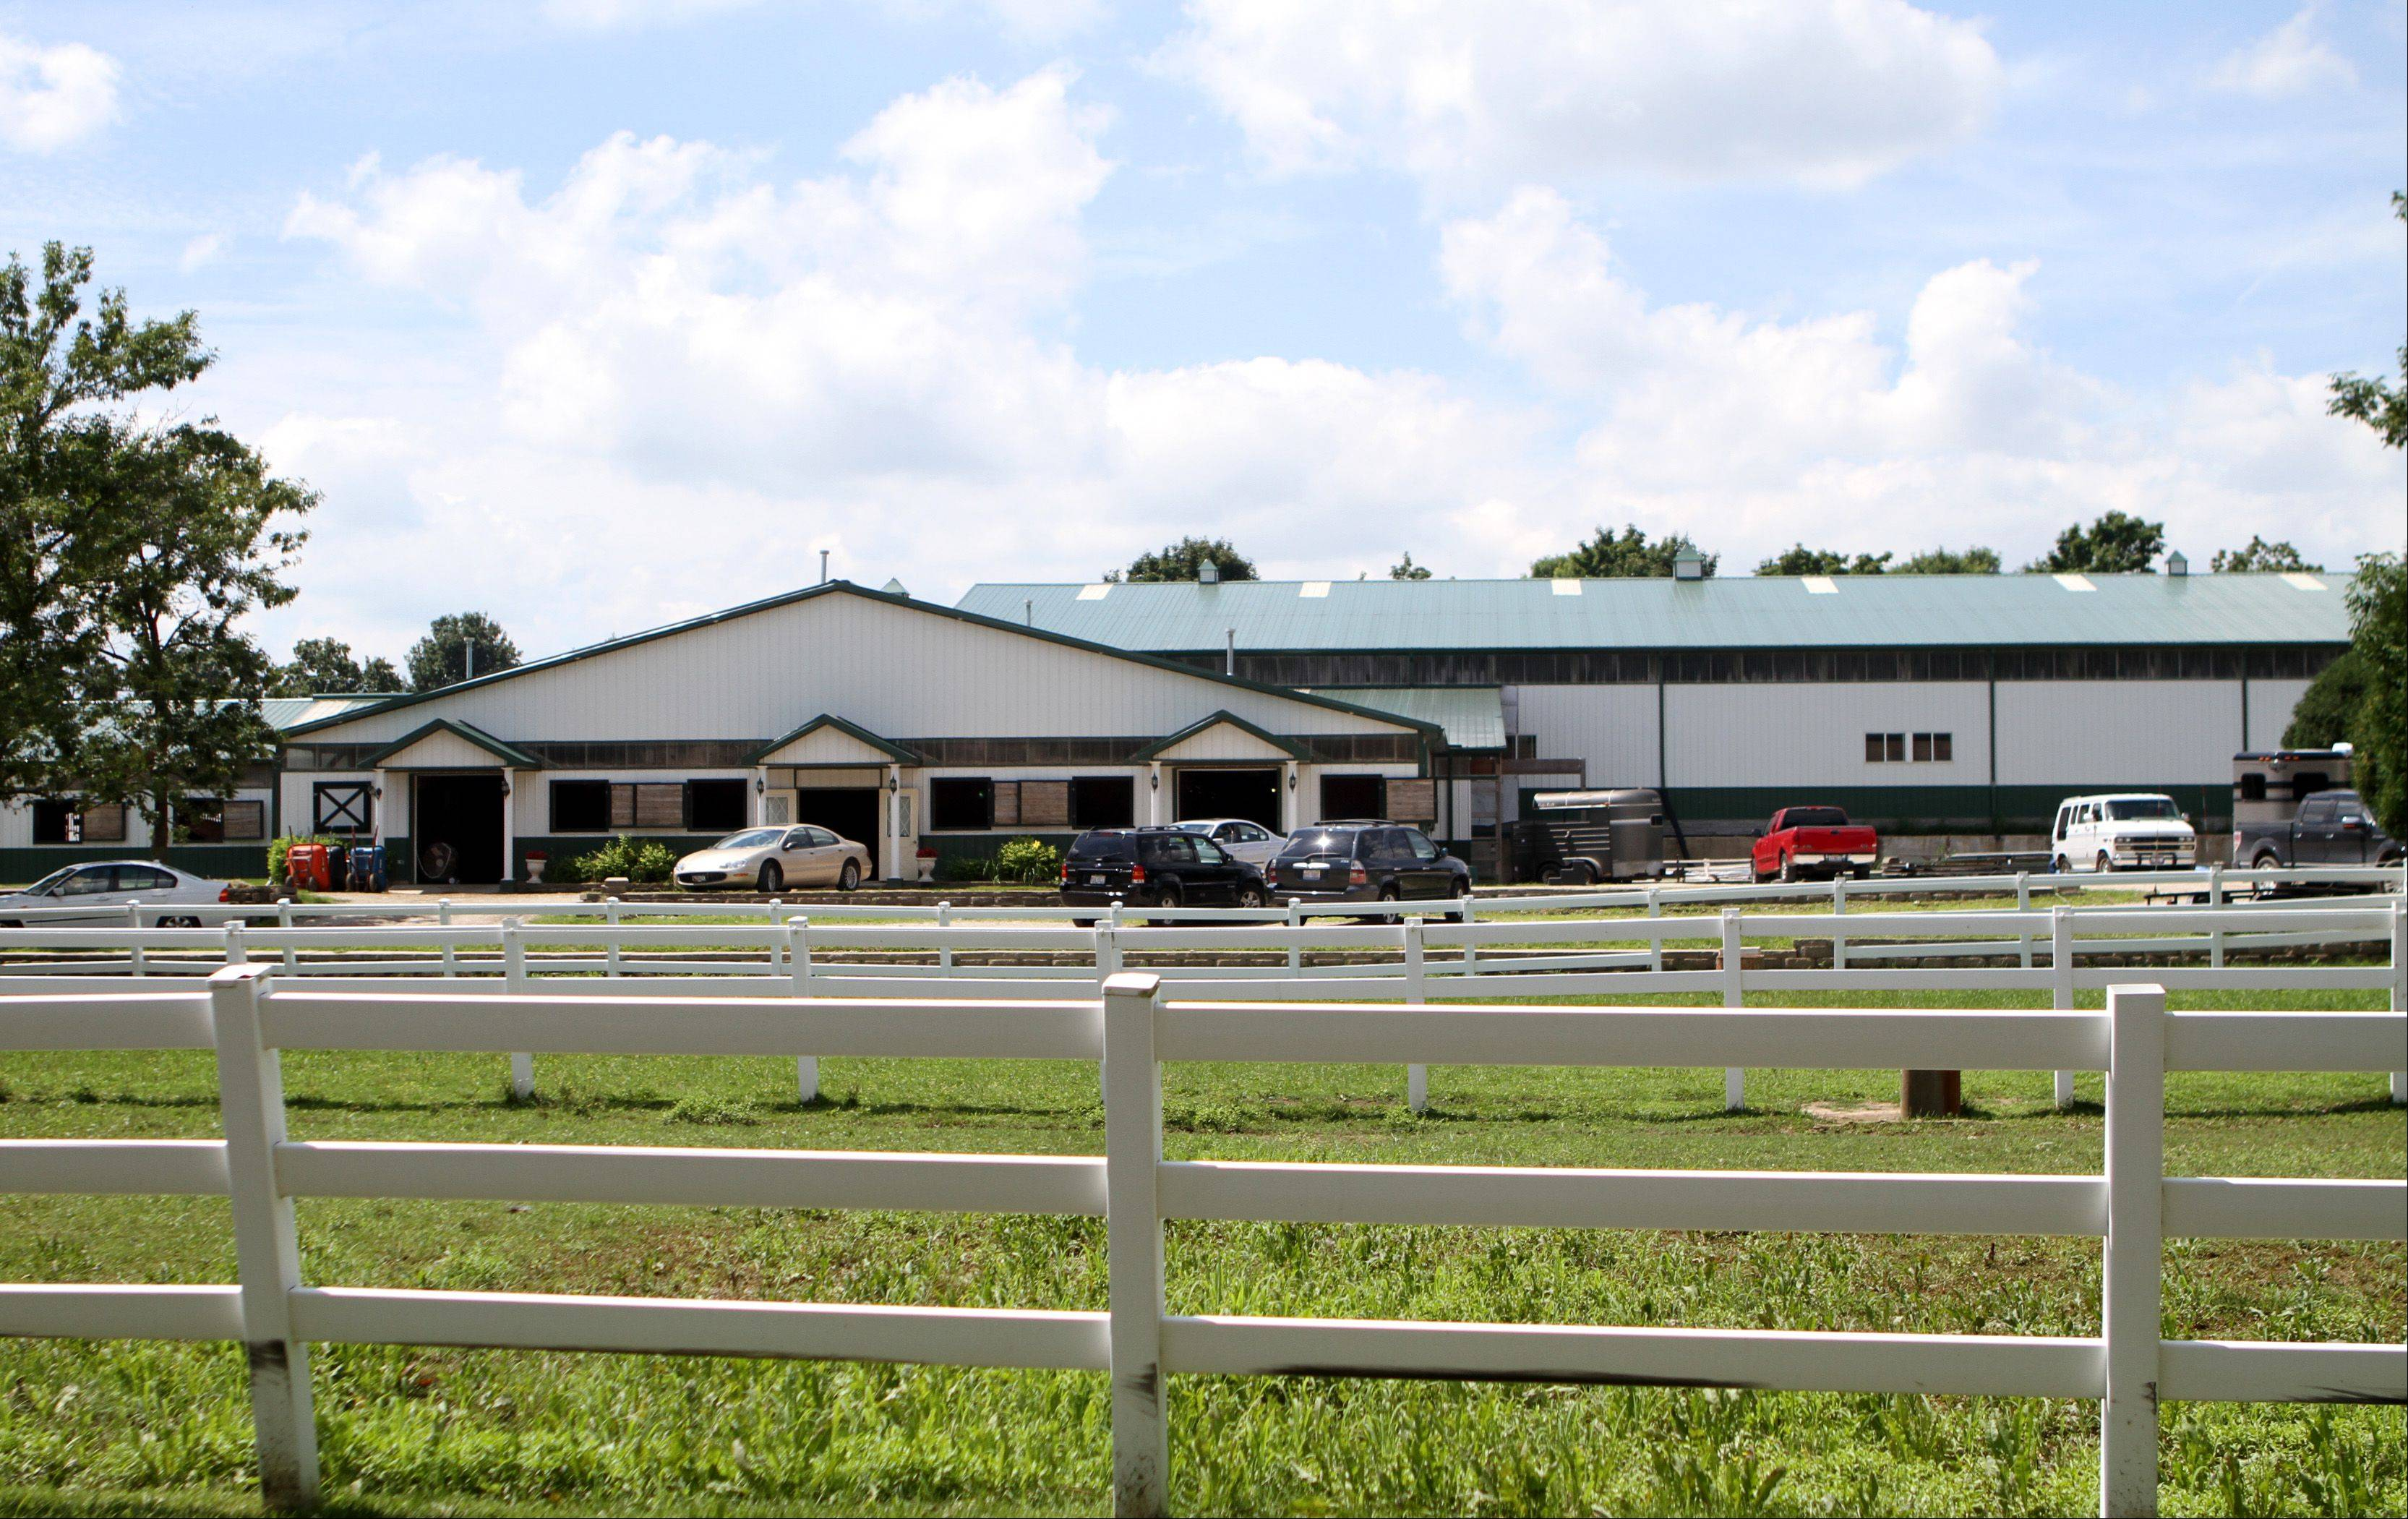 Horse boarding likely to be an election issue in Barrington Hills